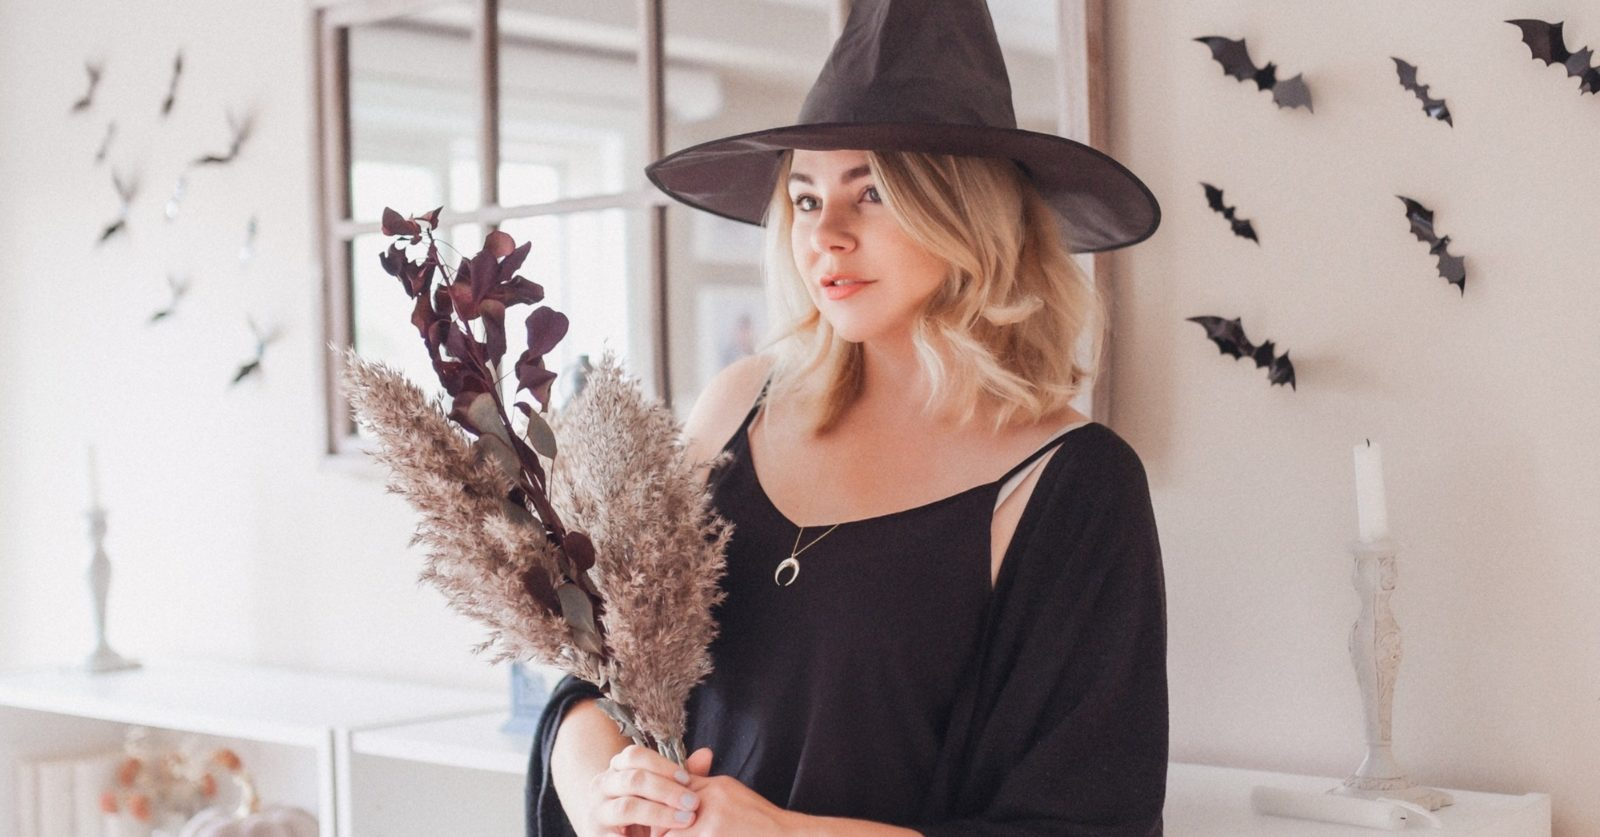 sustainable Halloween costumes - Halloween costume blog cover image